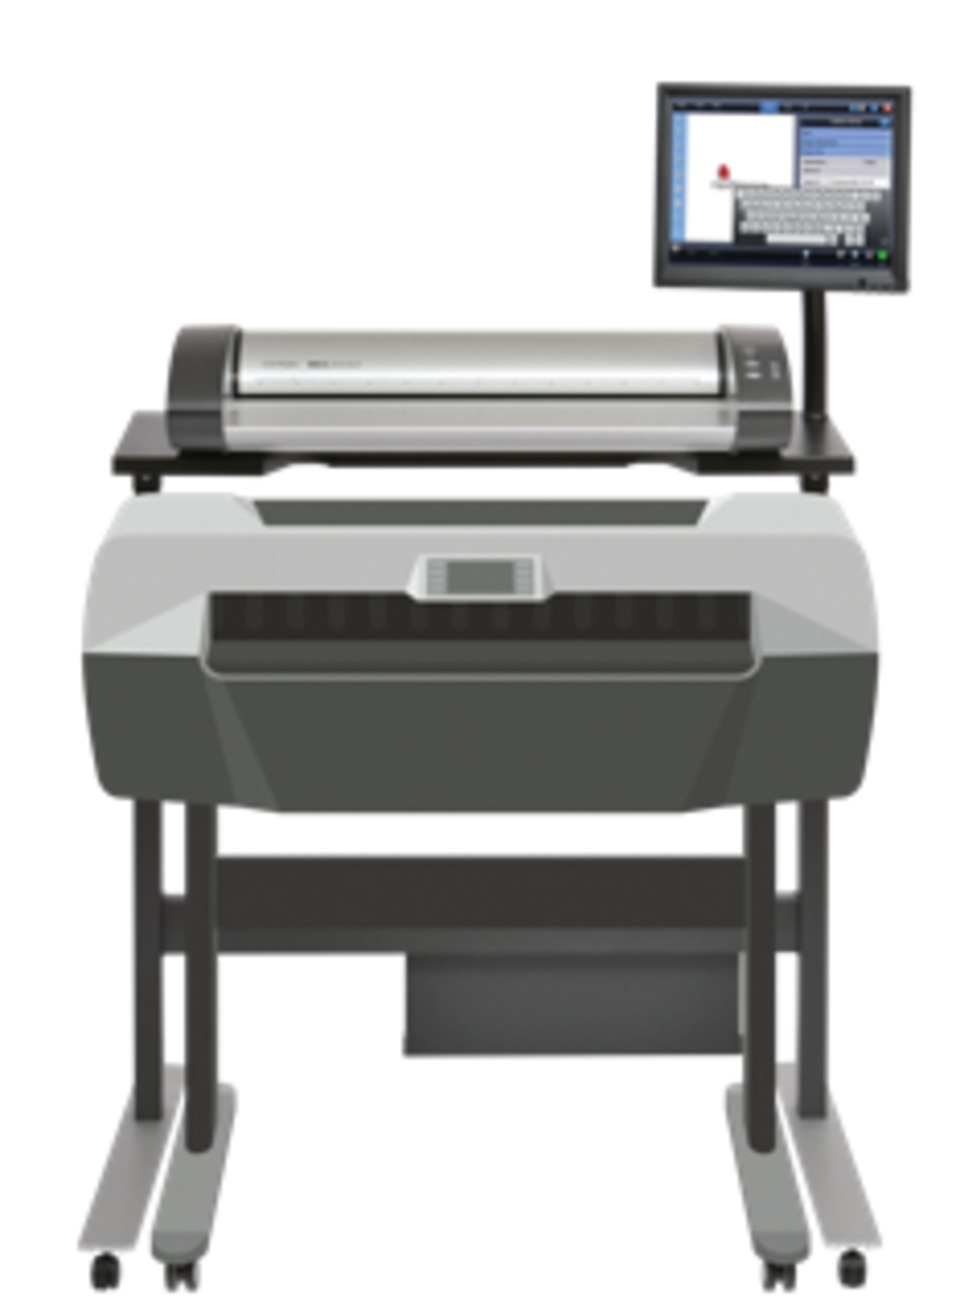 Contex Americas Unveils XD2490 MFP at AIA Convention 2010